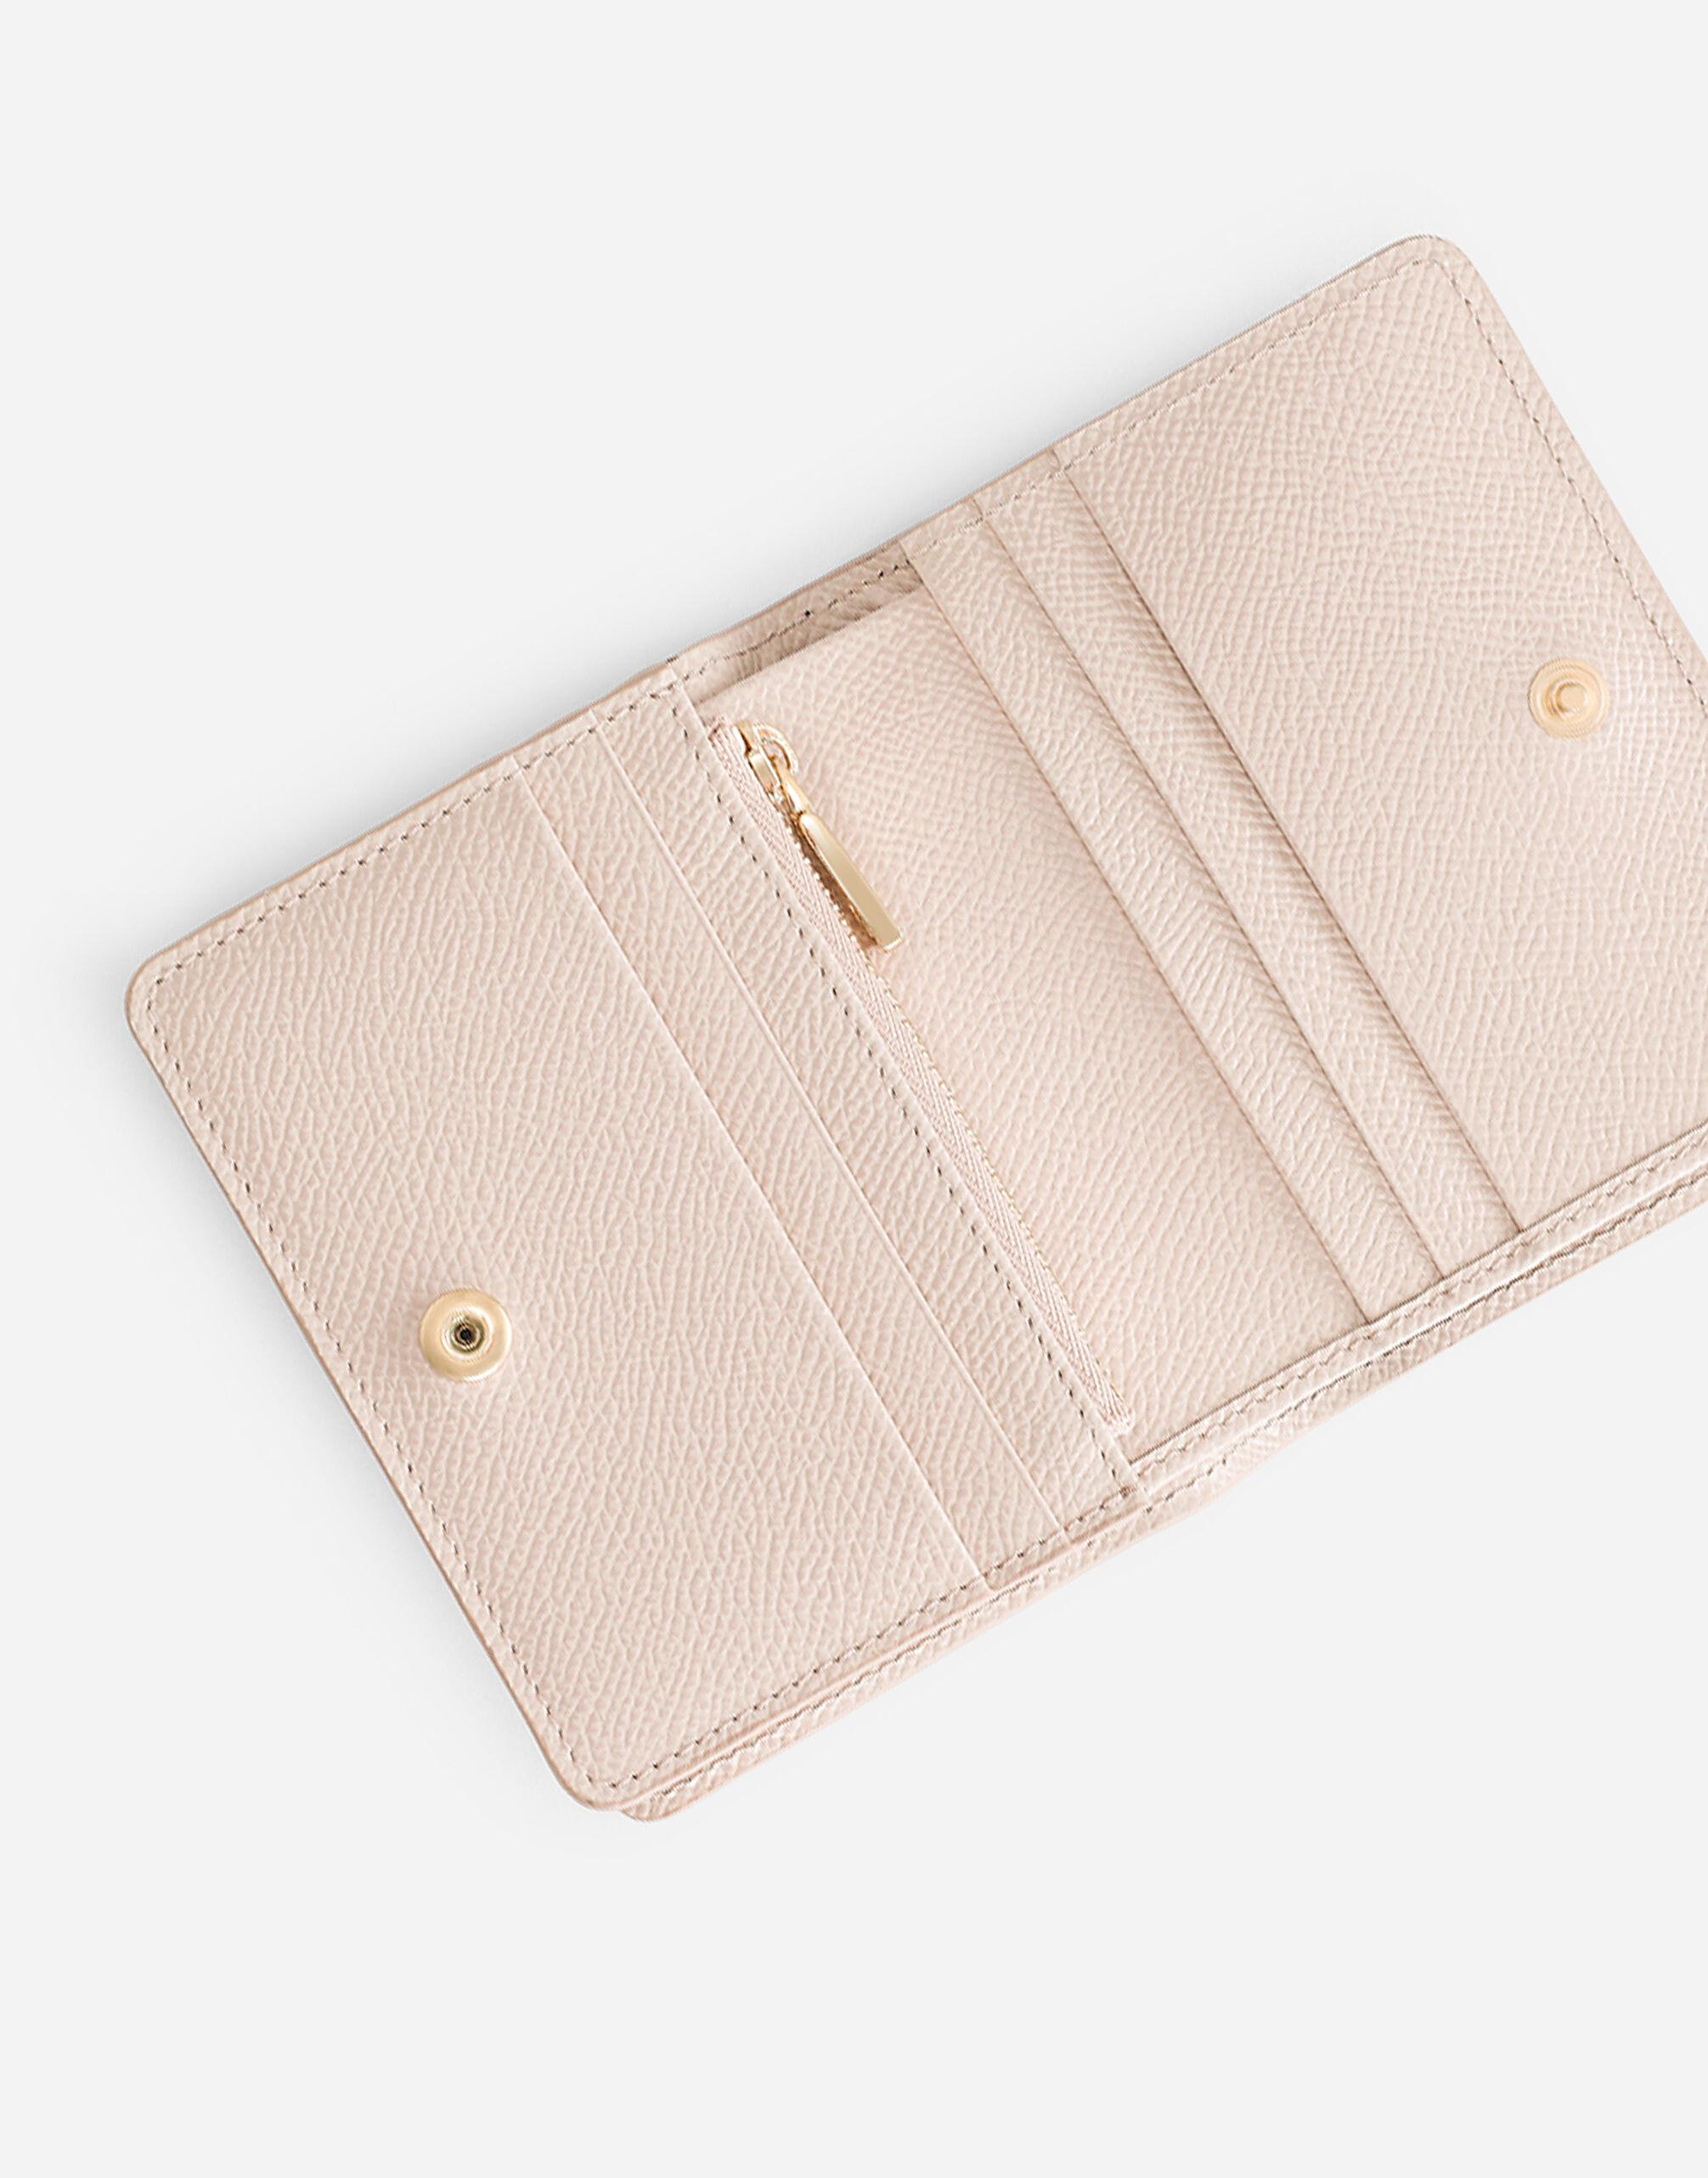 Small continental wallet in Dauphine calfskin with rhinestone-detailed DG logo 3